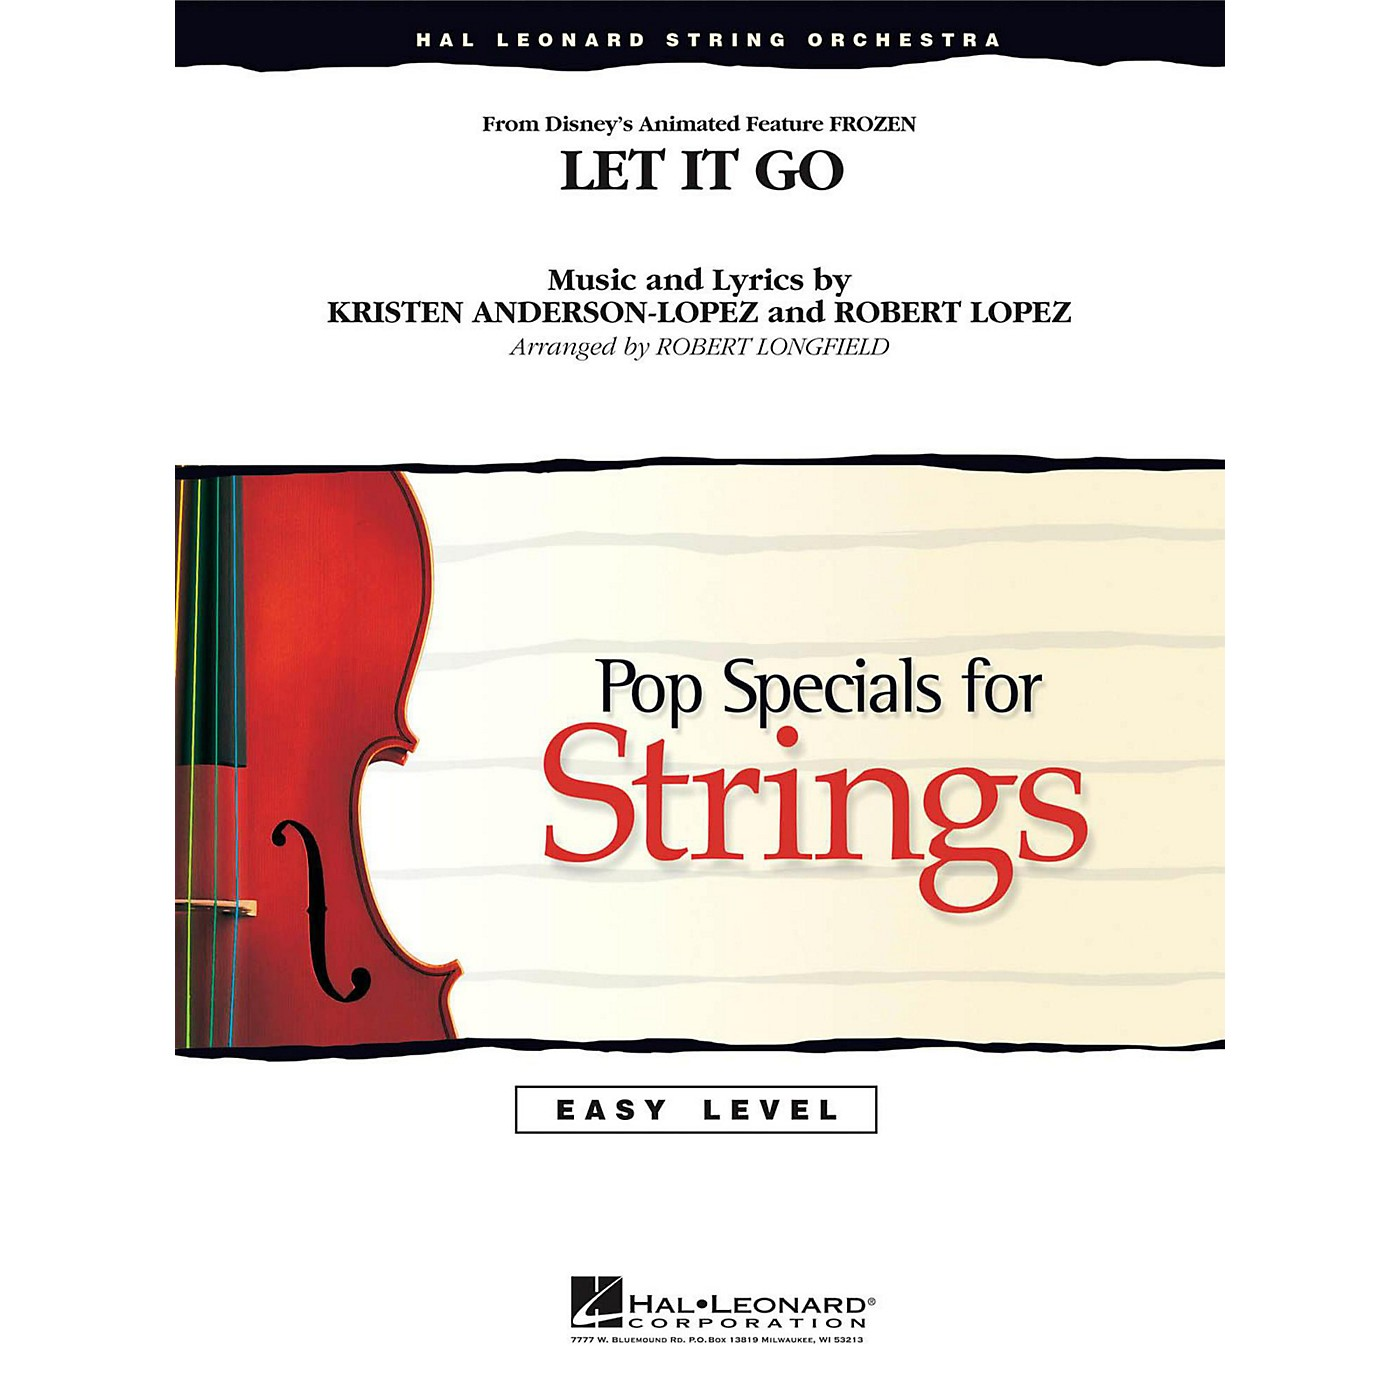 Hal Leonard Let It Go (From Frozen) Easy Pop Specials For Strings thumbnail